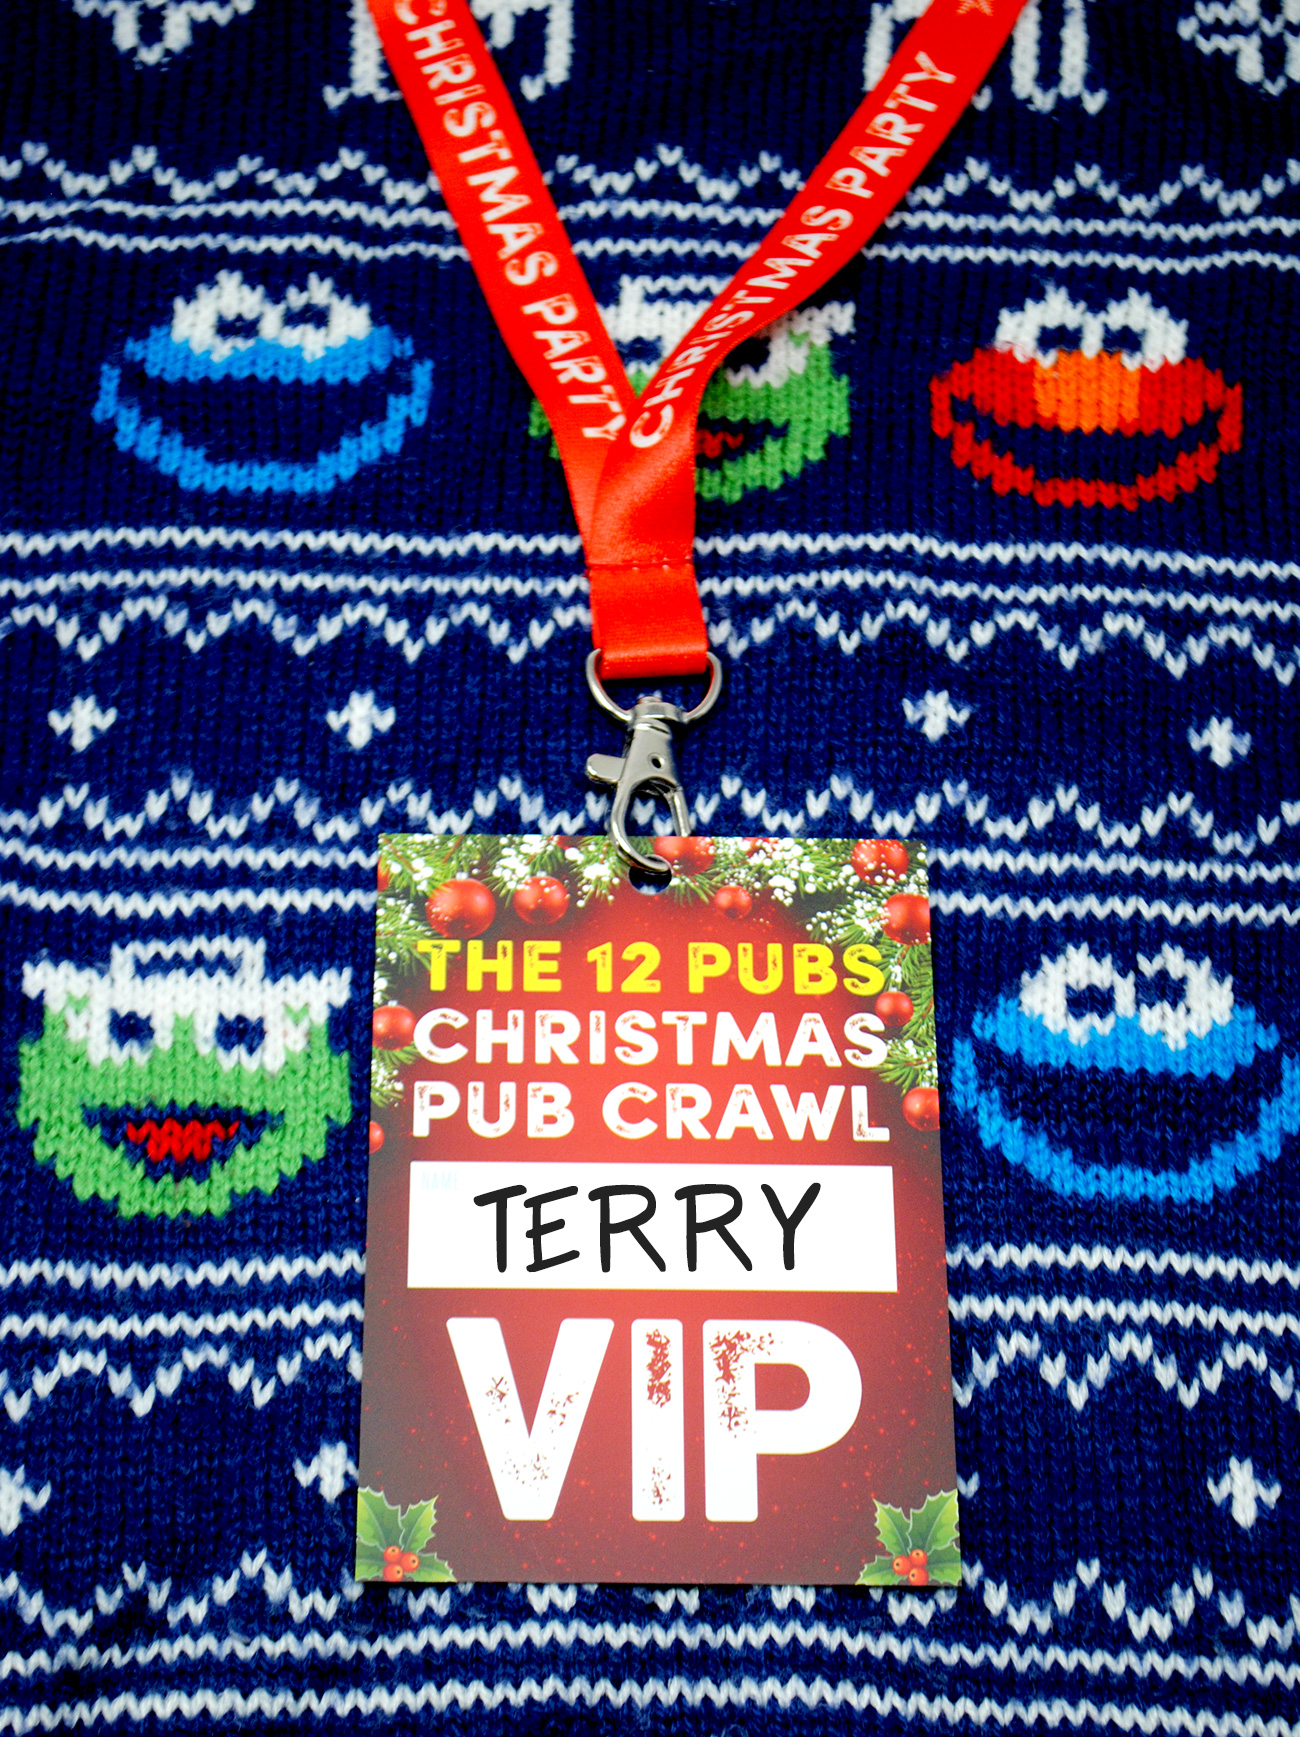 the 12 pubs christmas pub crawl lanyard